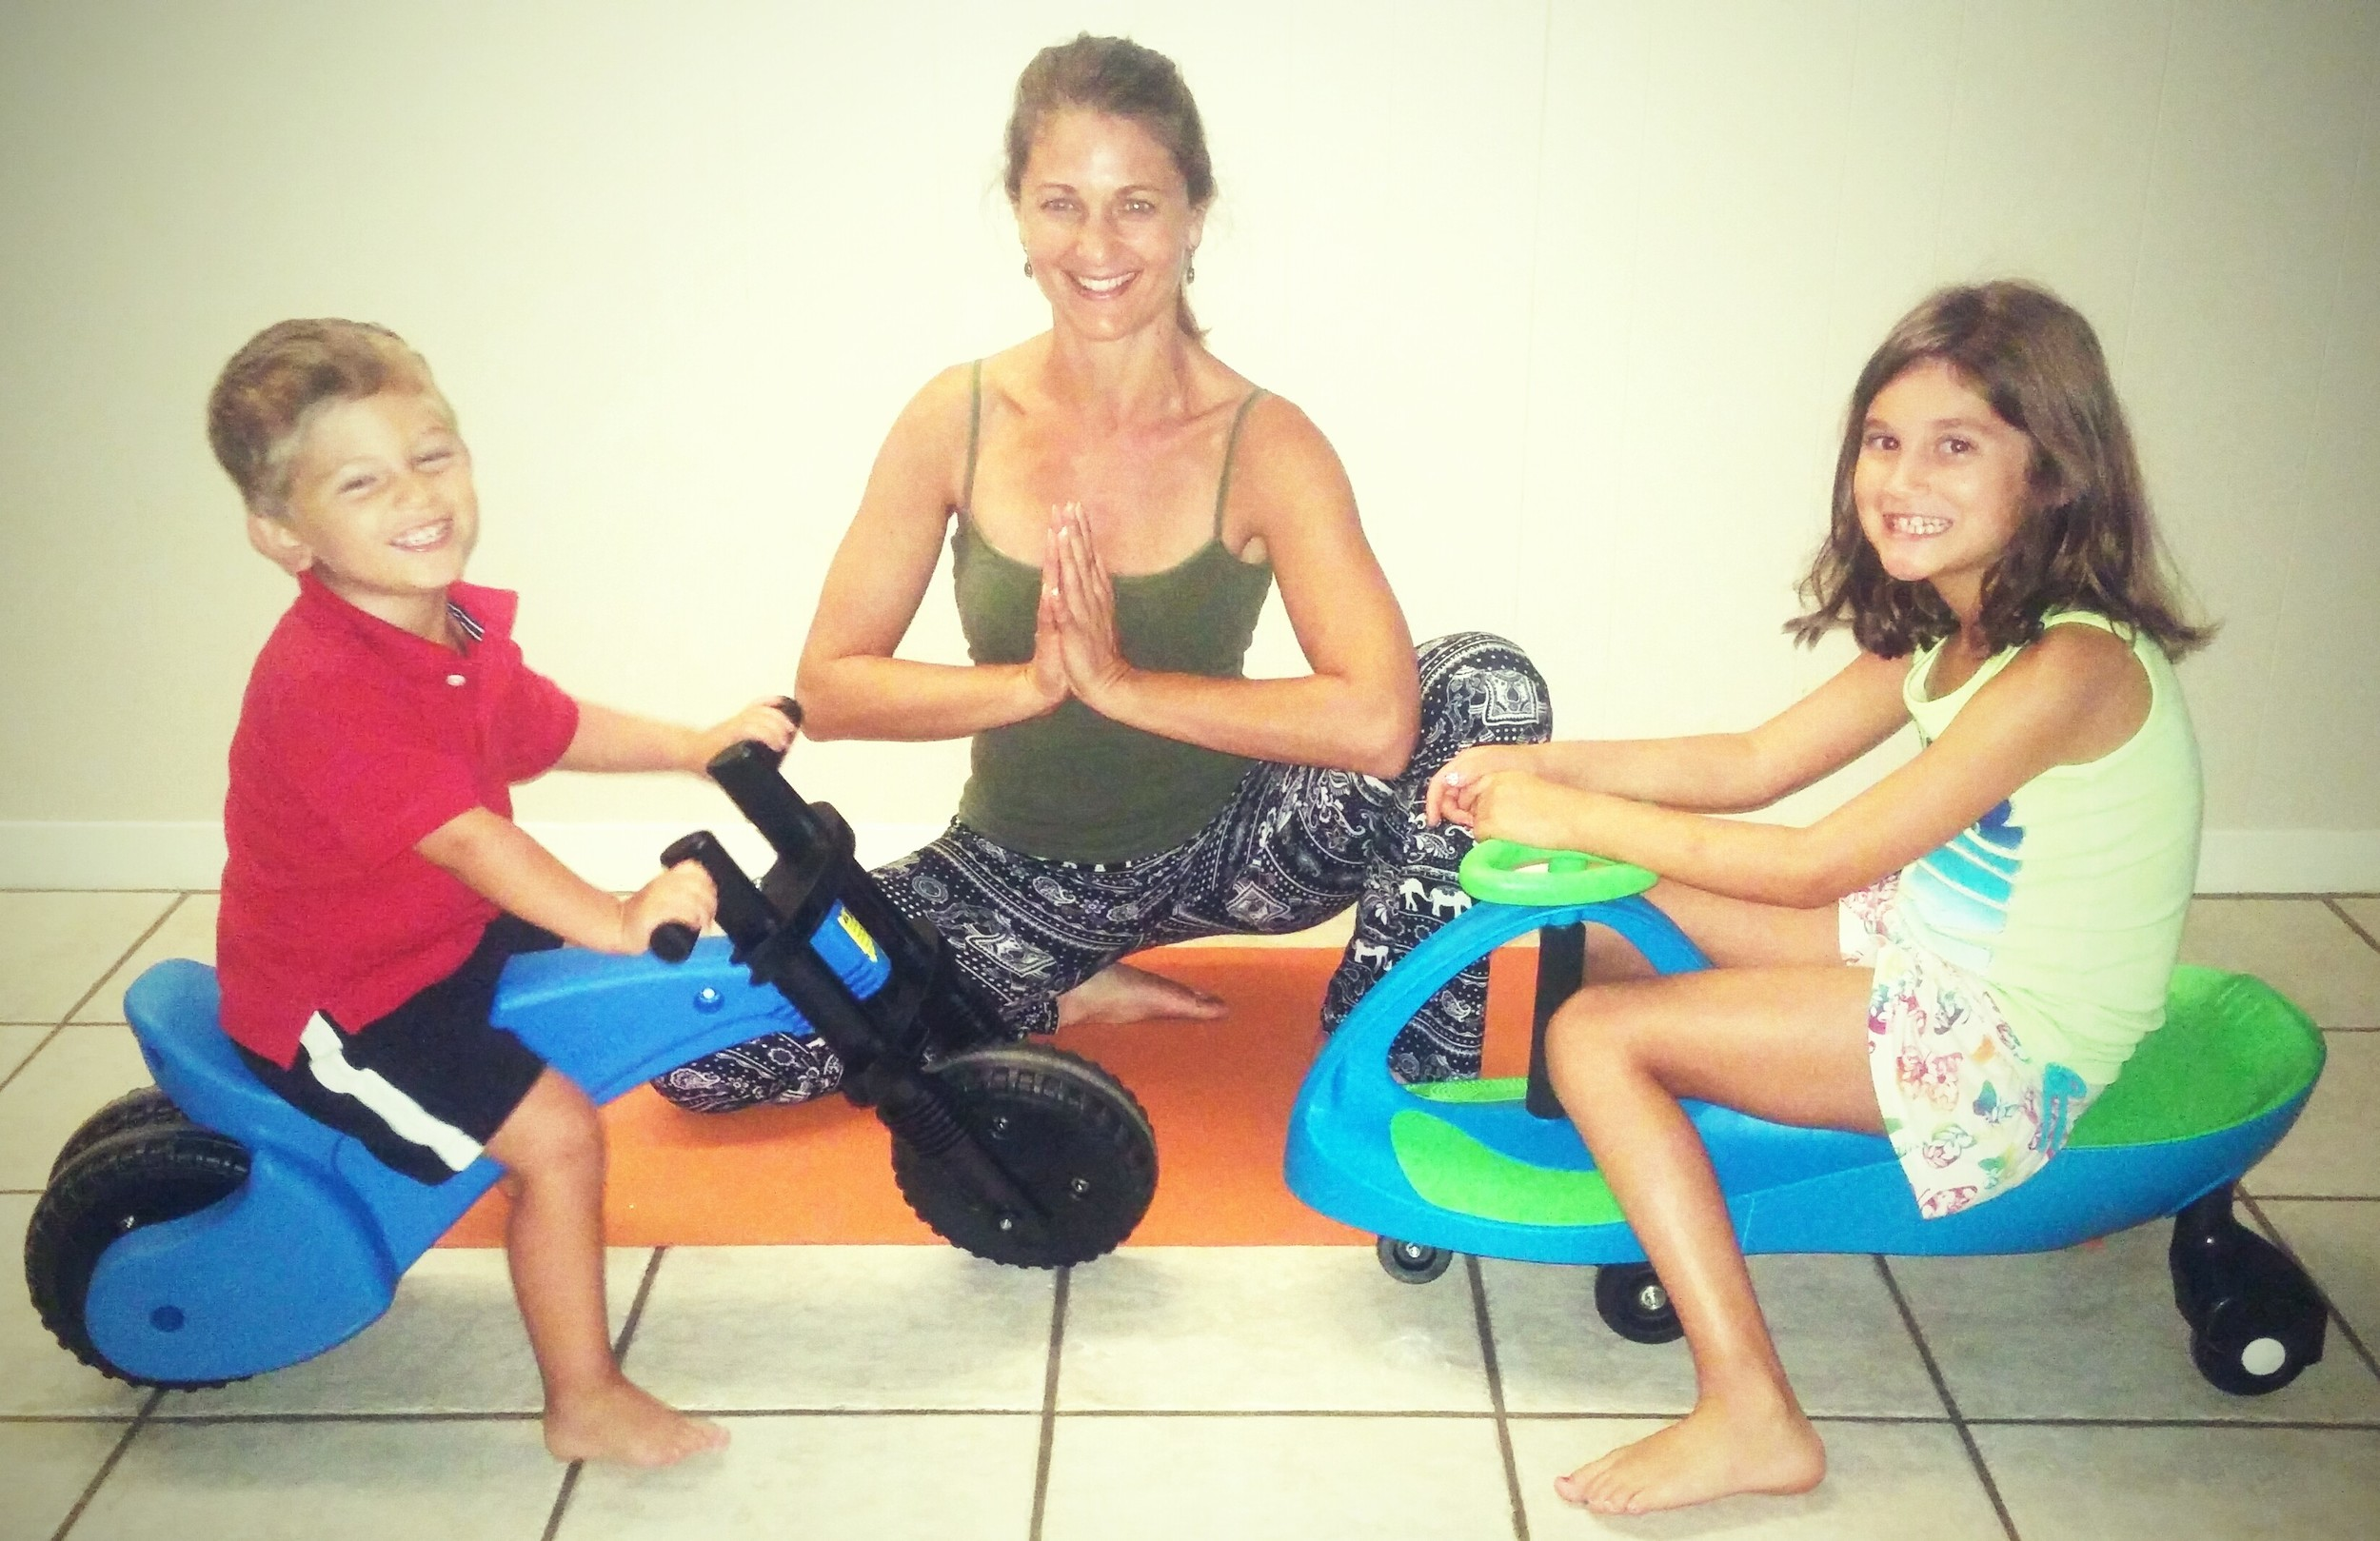 Here's the scoop on Lisa:    She is mom to Alexandra (7), and Dante, (2). Lisa has been a yoga teacher for 12 years, specializing in prenatal and postnatal yoga for the past 5 years. She is the founder and owner of    Austin Prenatal Yoga   . Lisa has a graduate degree in counseling psychology, has completed many yoga teacher training certifications, and is currently earning her second prenatal and postnatal teacher training certificate. She is the recipient of the Austin Birth Awards 2013 Best Prenatal Yoga Instructor.